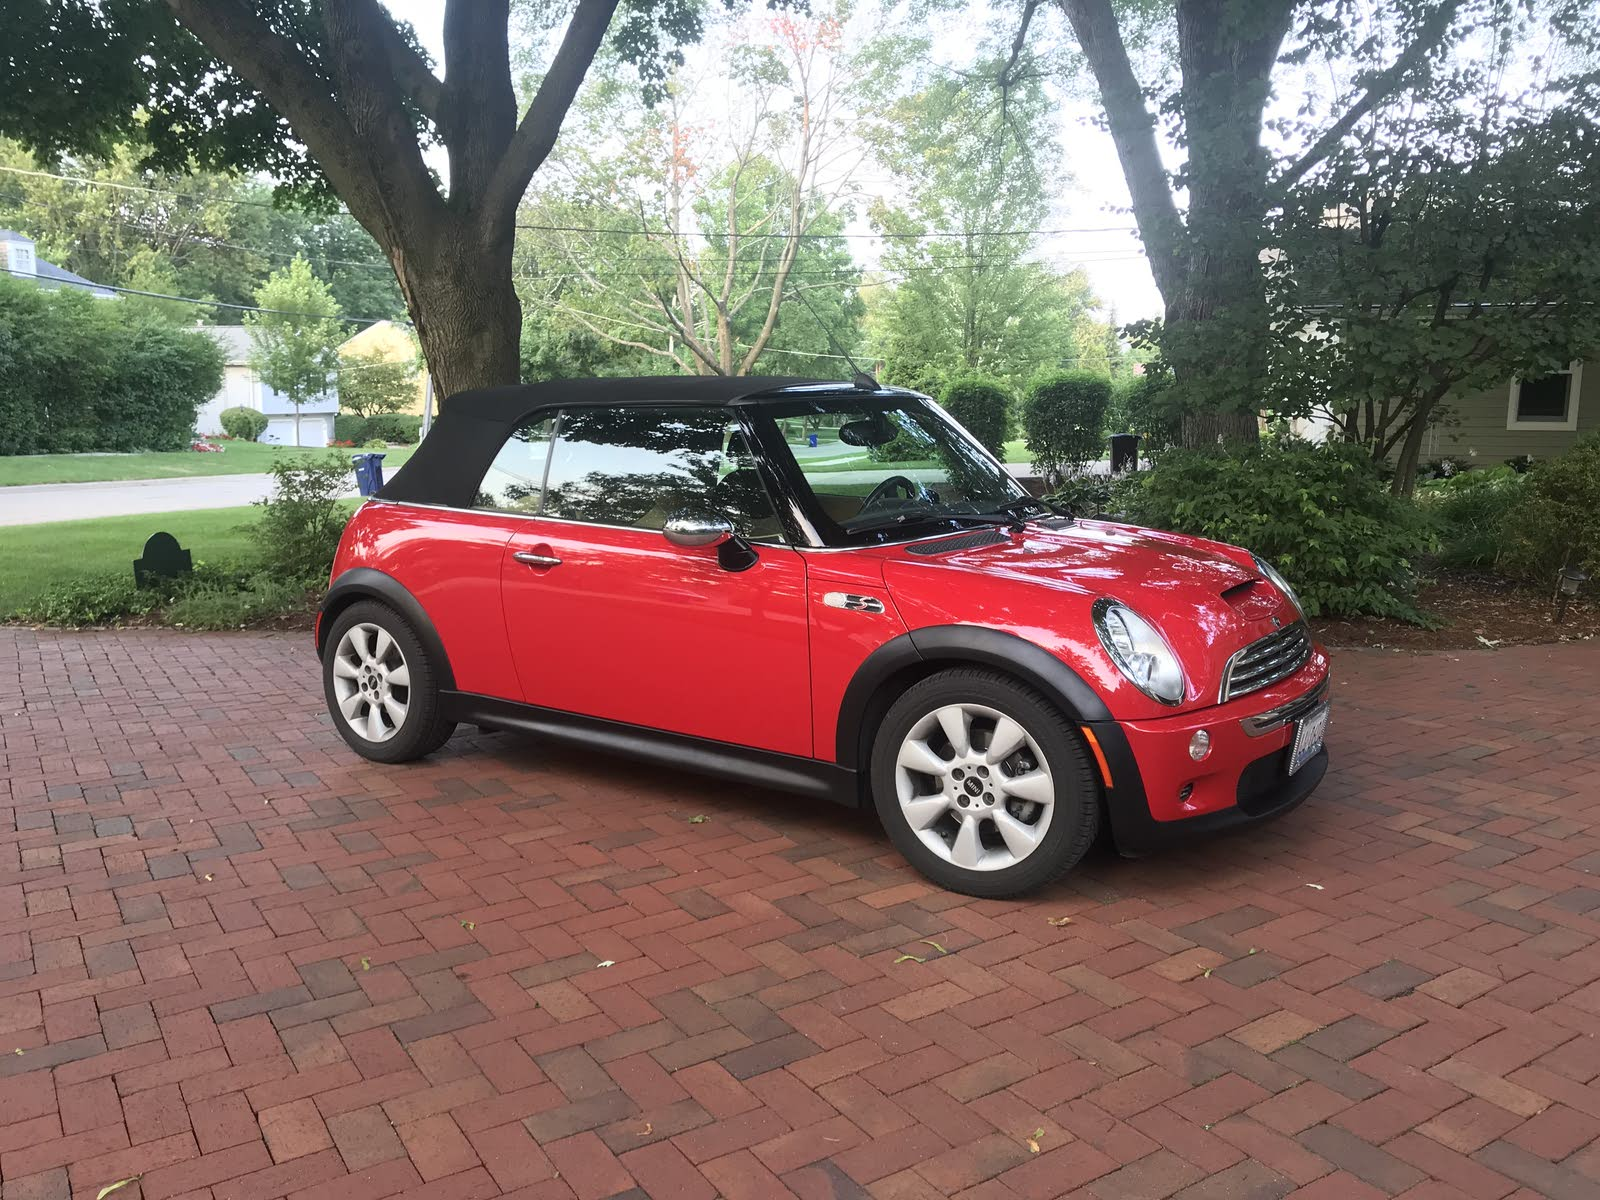 mini cooper questions topping off transmission fluid for 2006 mini rh cargurus com Mini Cooper Convertible Car Seat In Mini Cooper S Racing